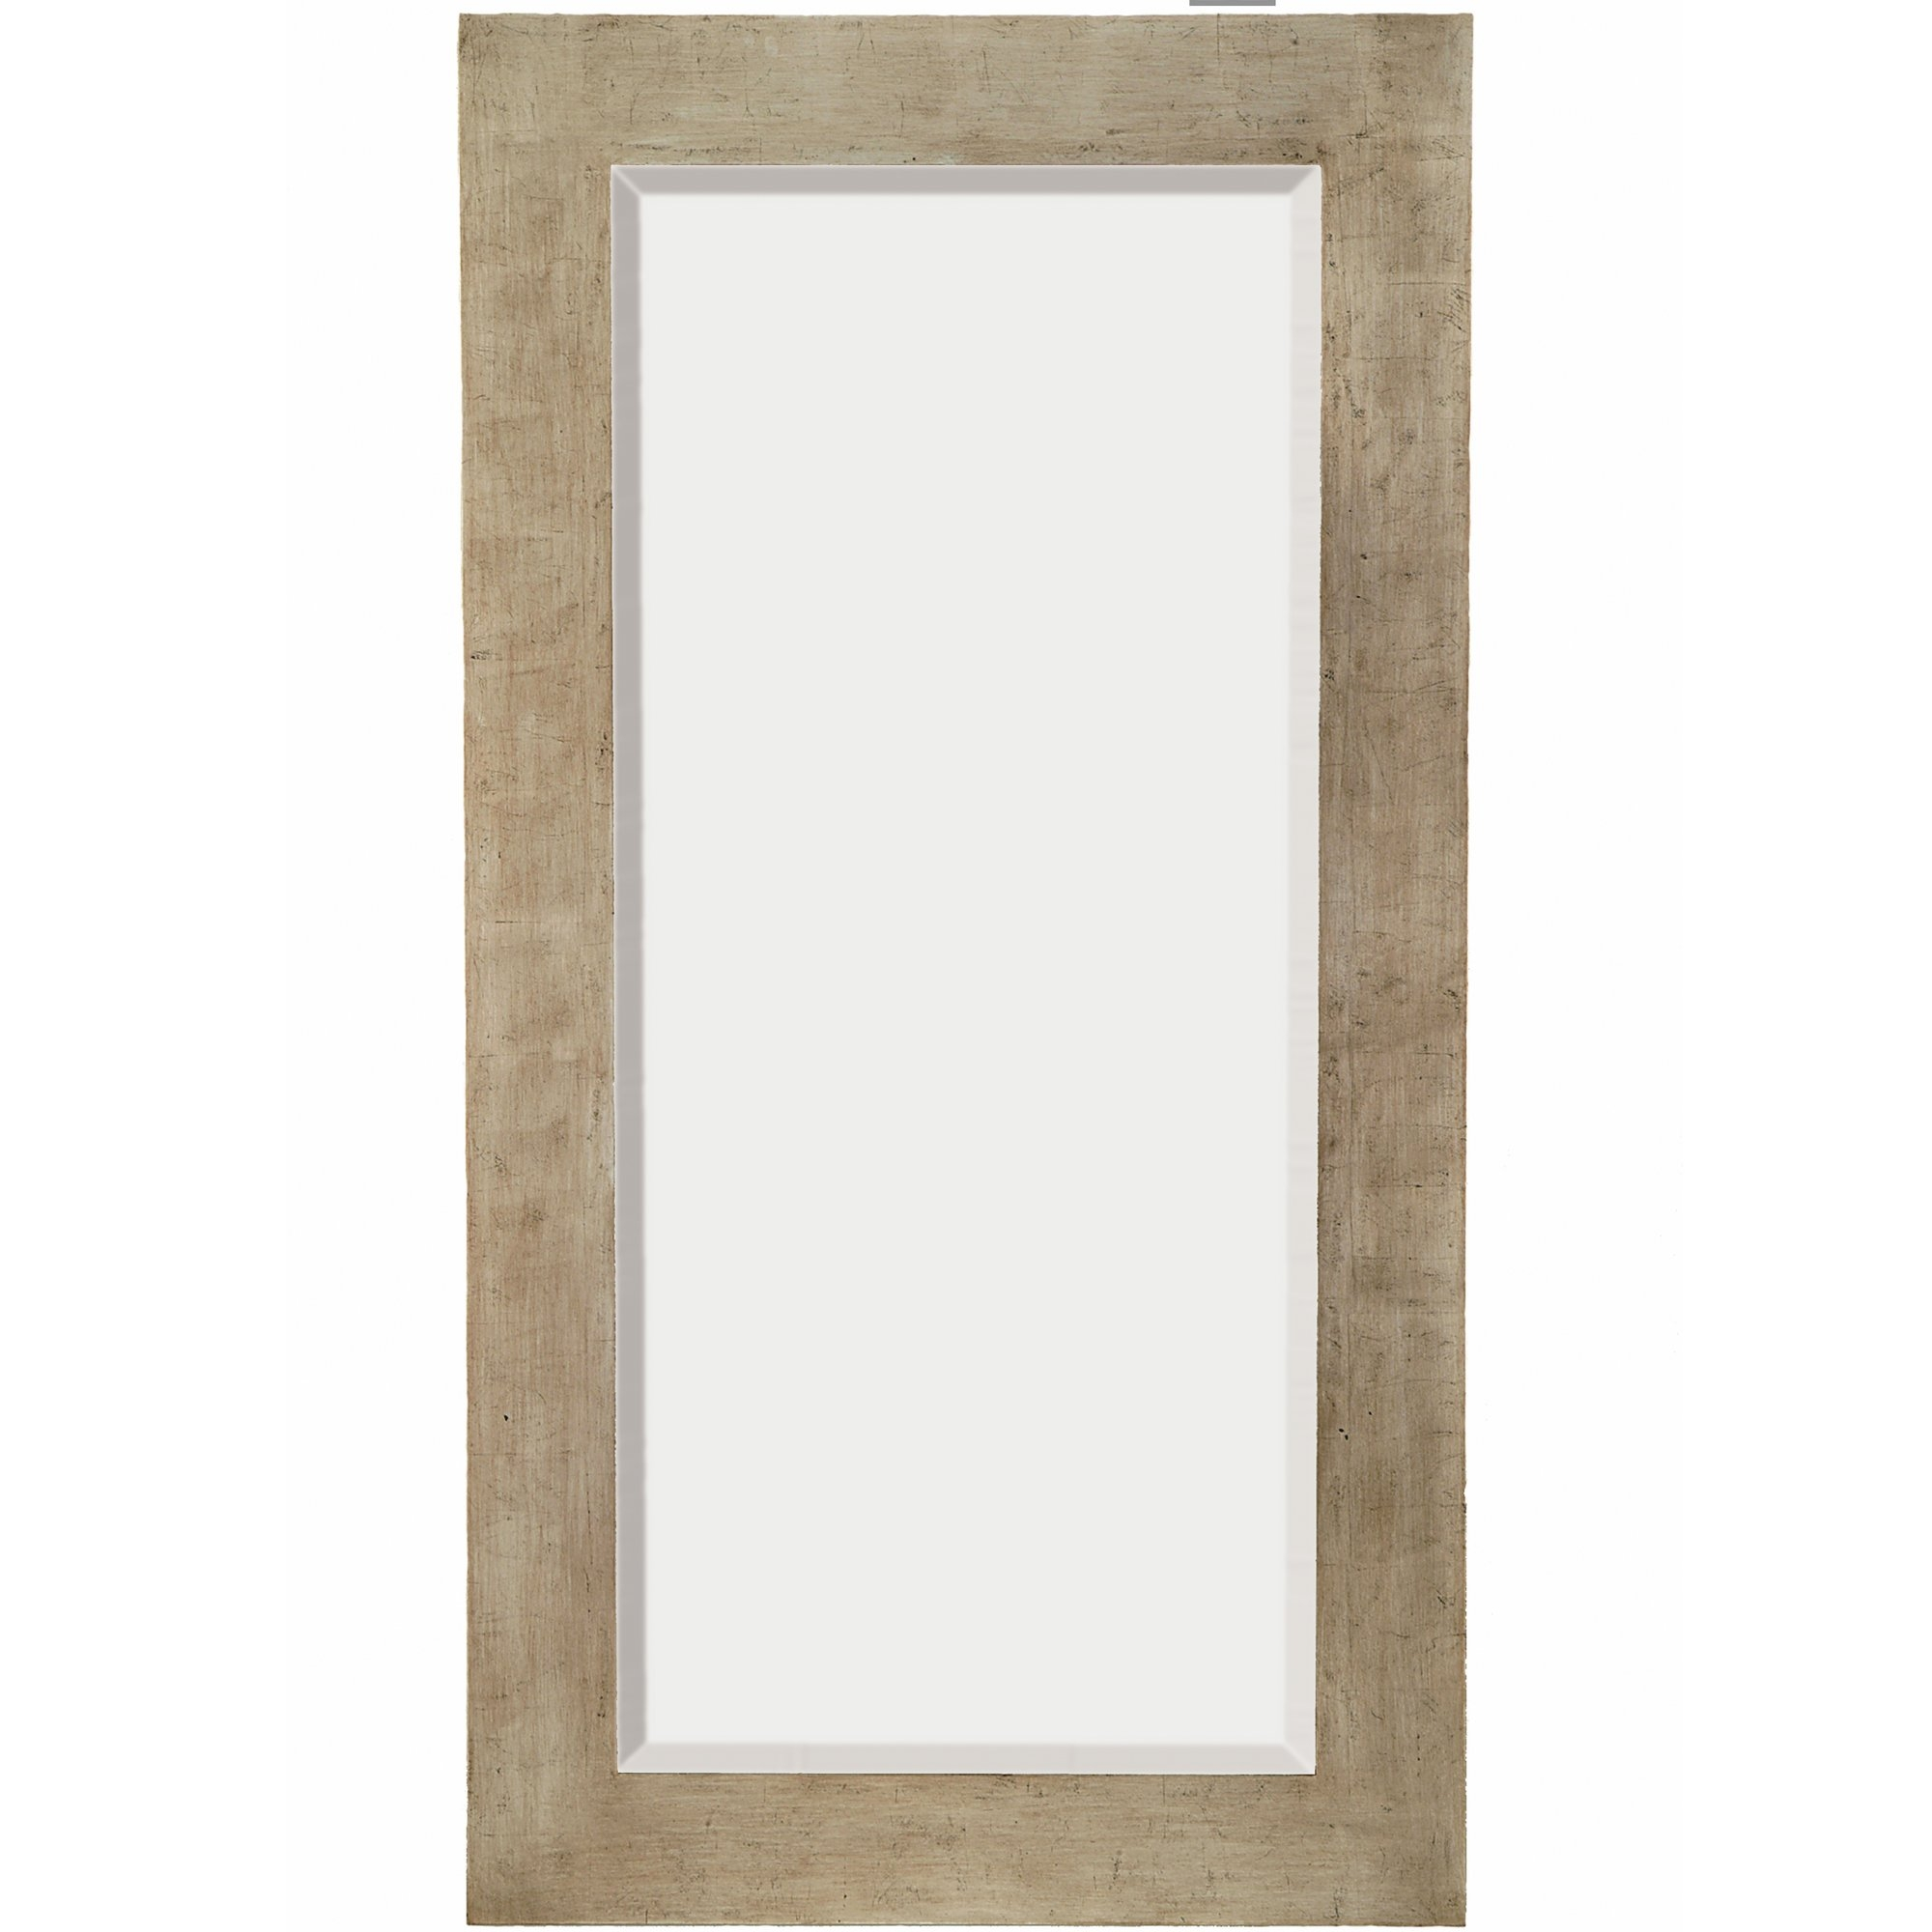 Majestic Mirror Tall Rectangular Silver Sleek Beveled Glass Framed For Tall Silver Mirror (View 5 of 15)